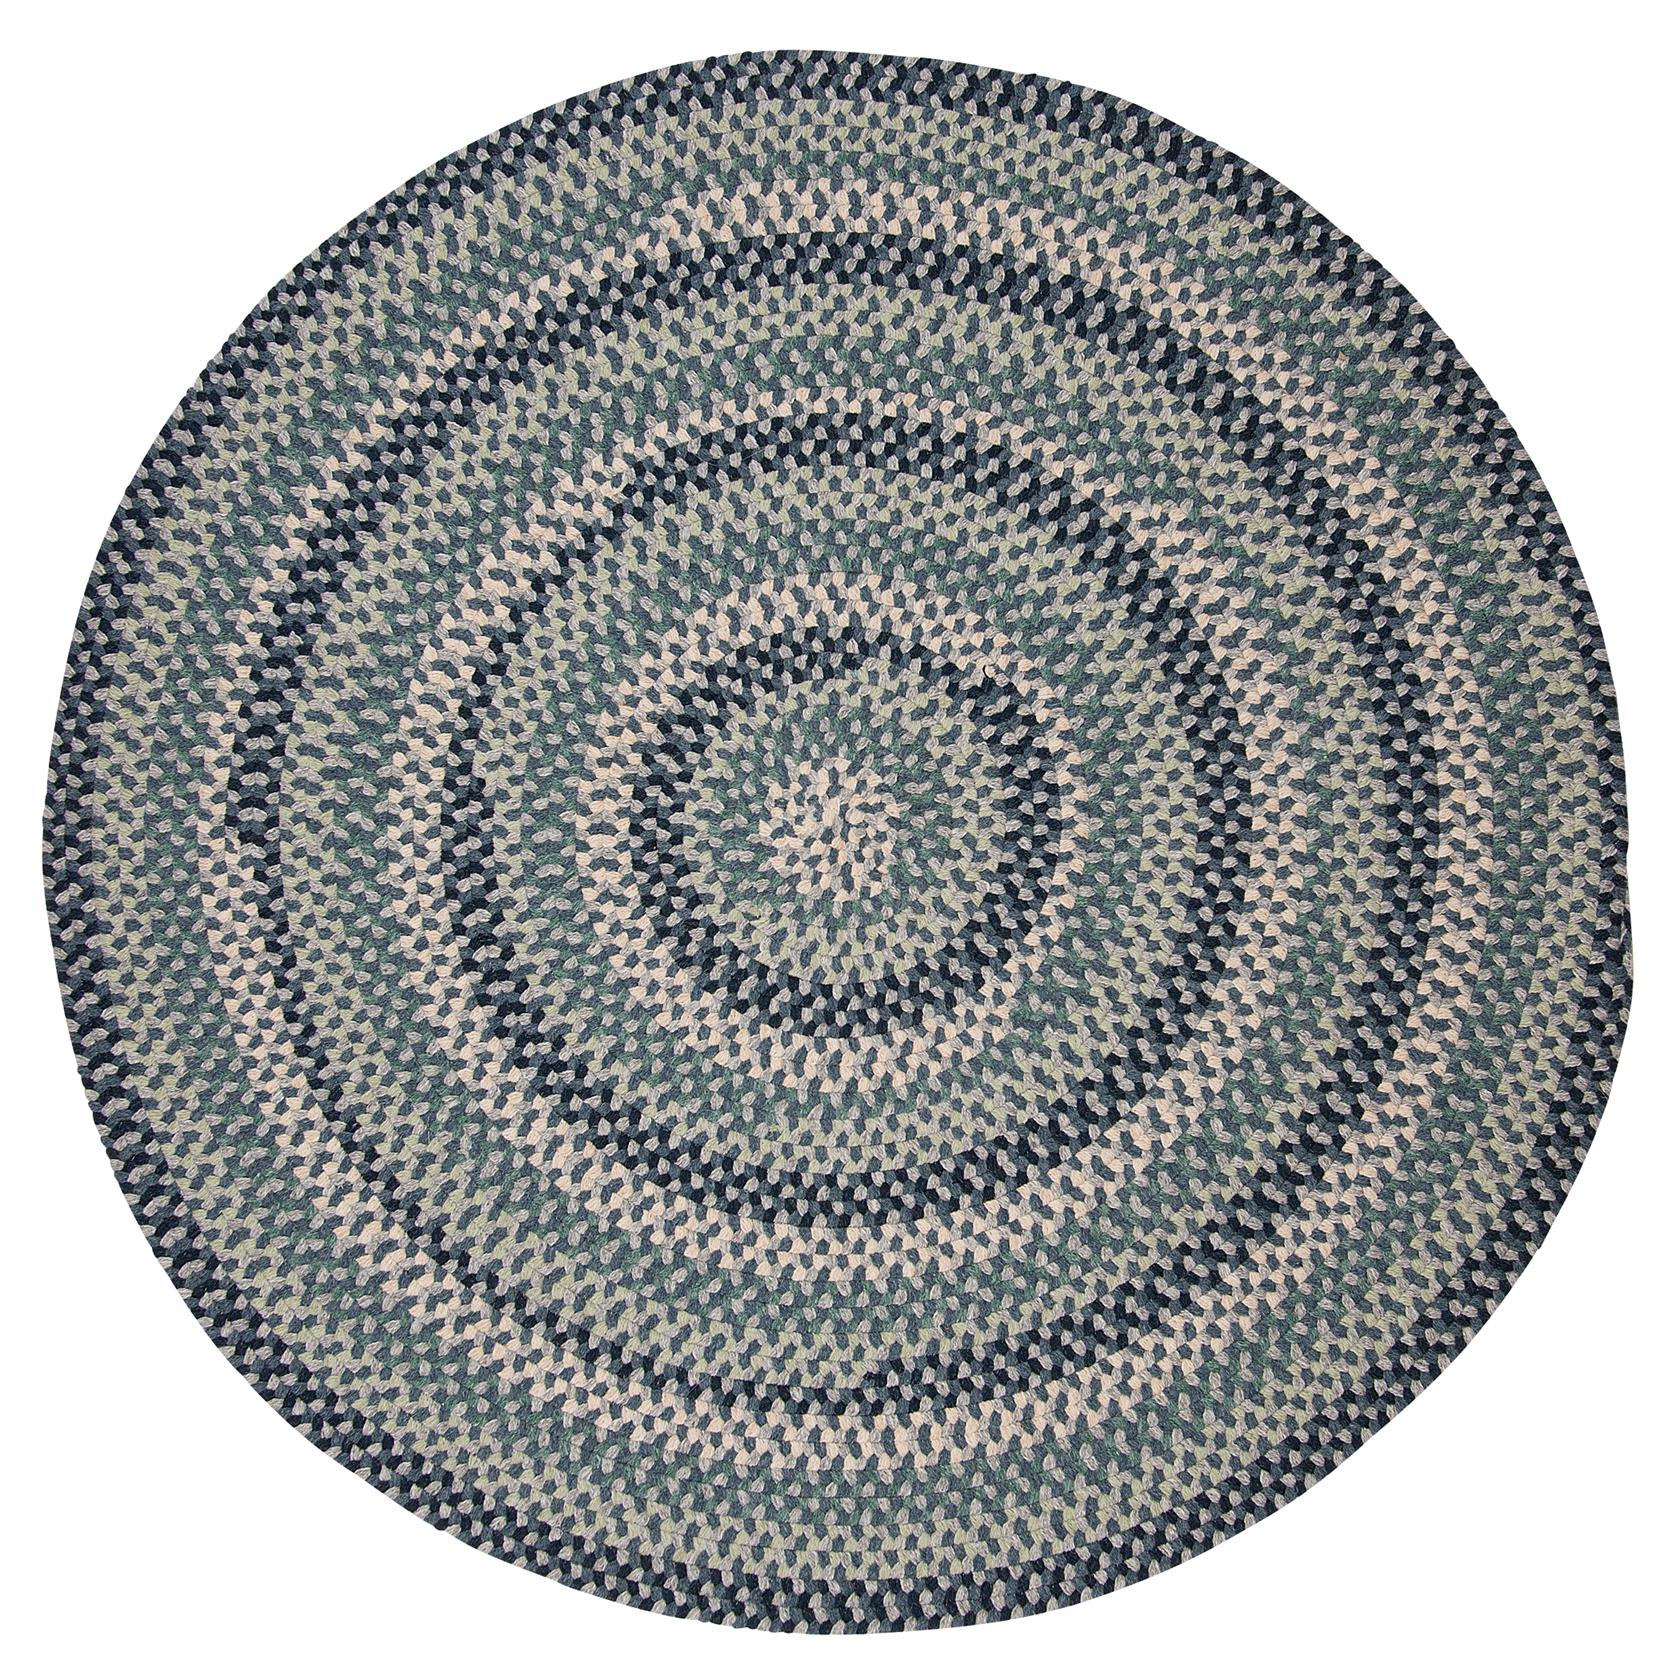 Traditional And Trend Setting Colors Blend Festively In This Reversible,  Oval Braided Rug To Put A Vibrant Stamp On Any Decor. Custom Sizes Are  Available.